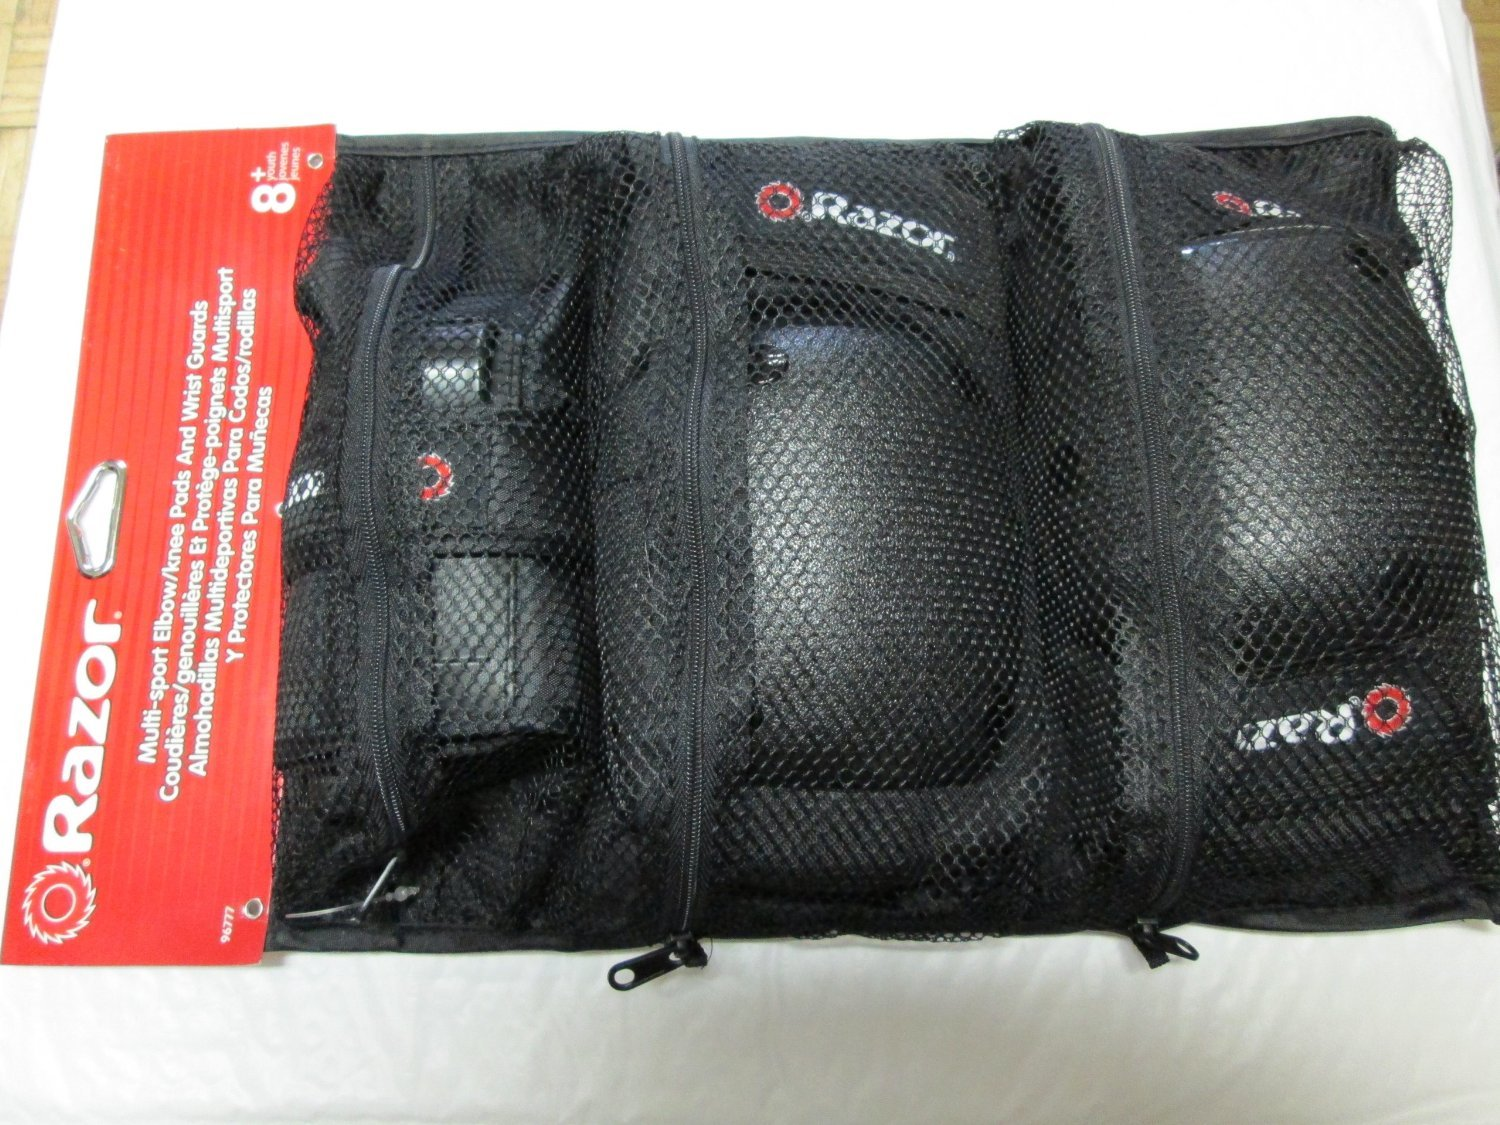 Razor Multi-sport Elbow/knee Pads and Wrist Guards 8+ - Black by Razor (Image #1)